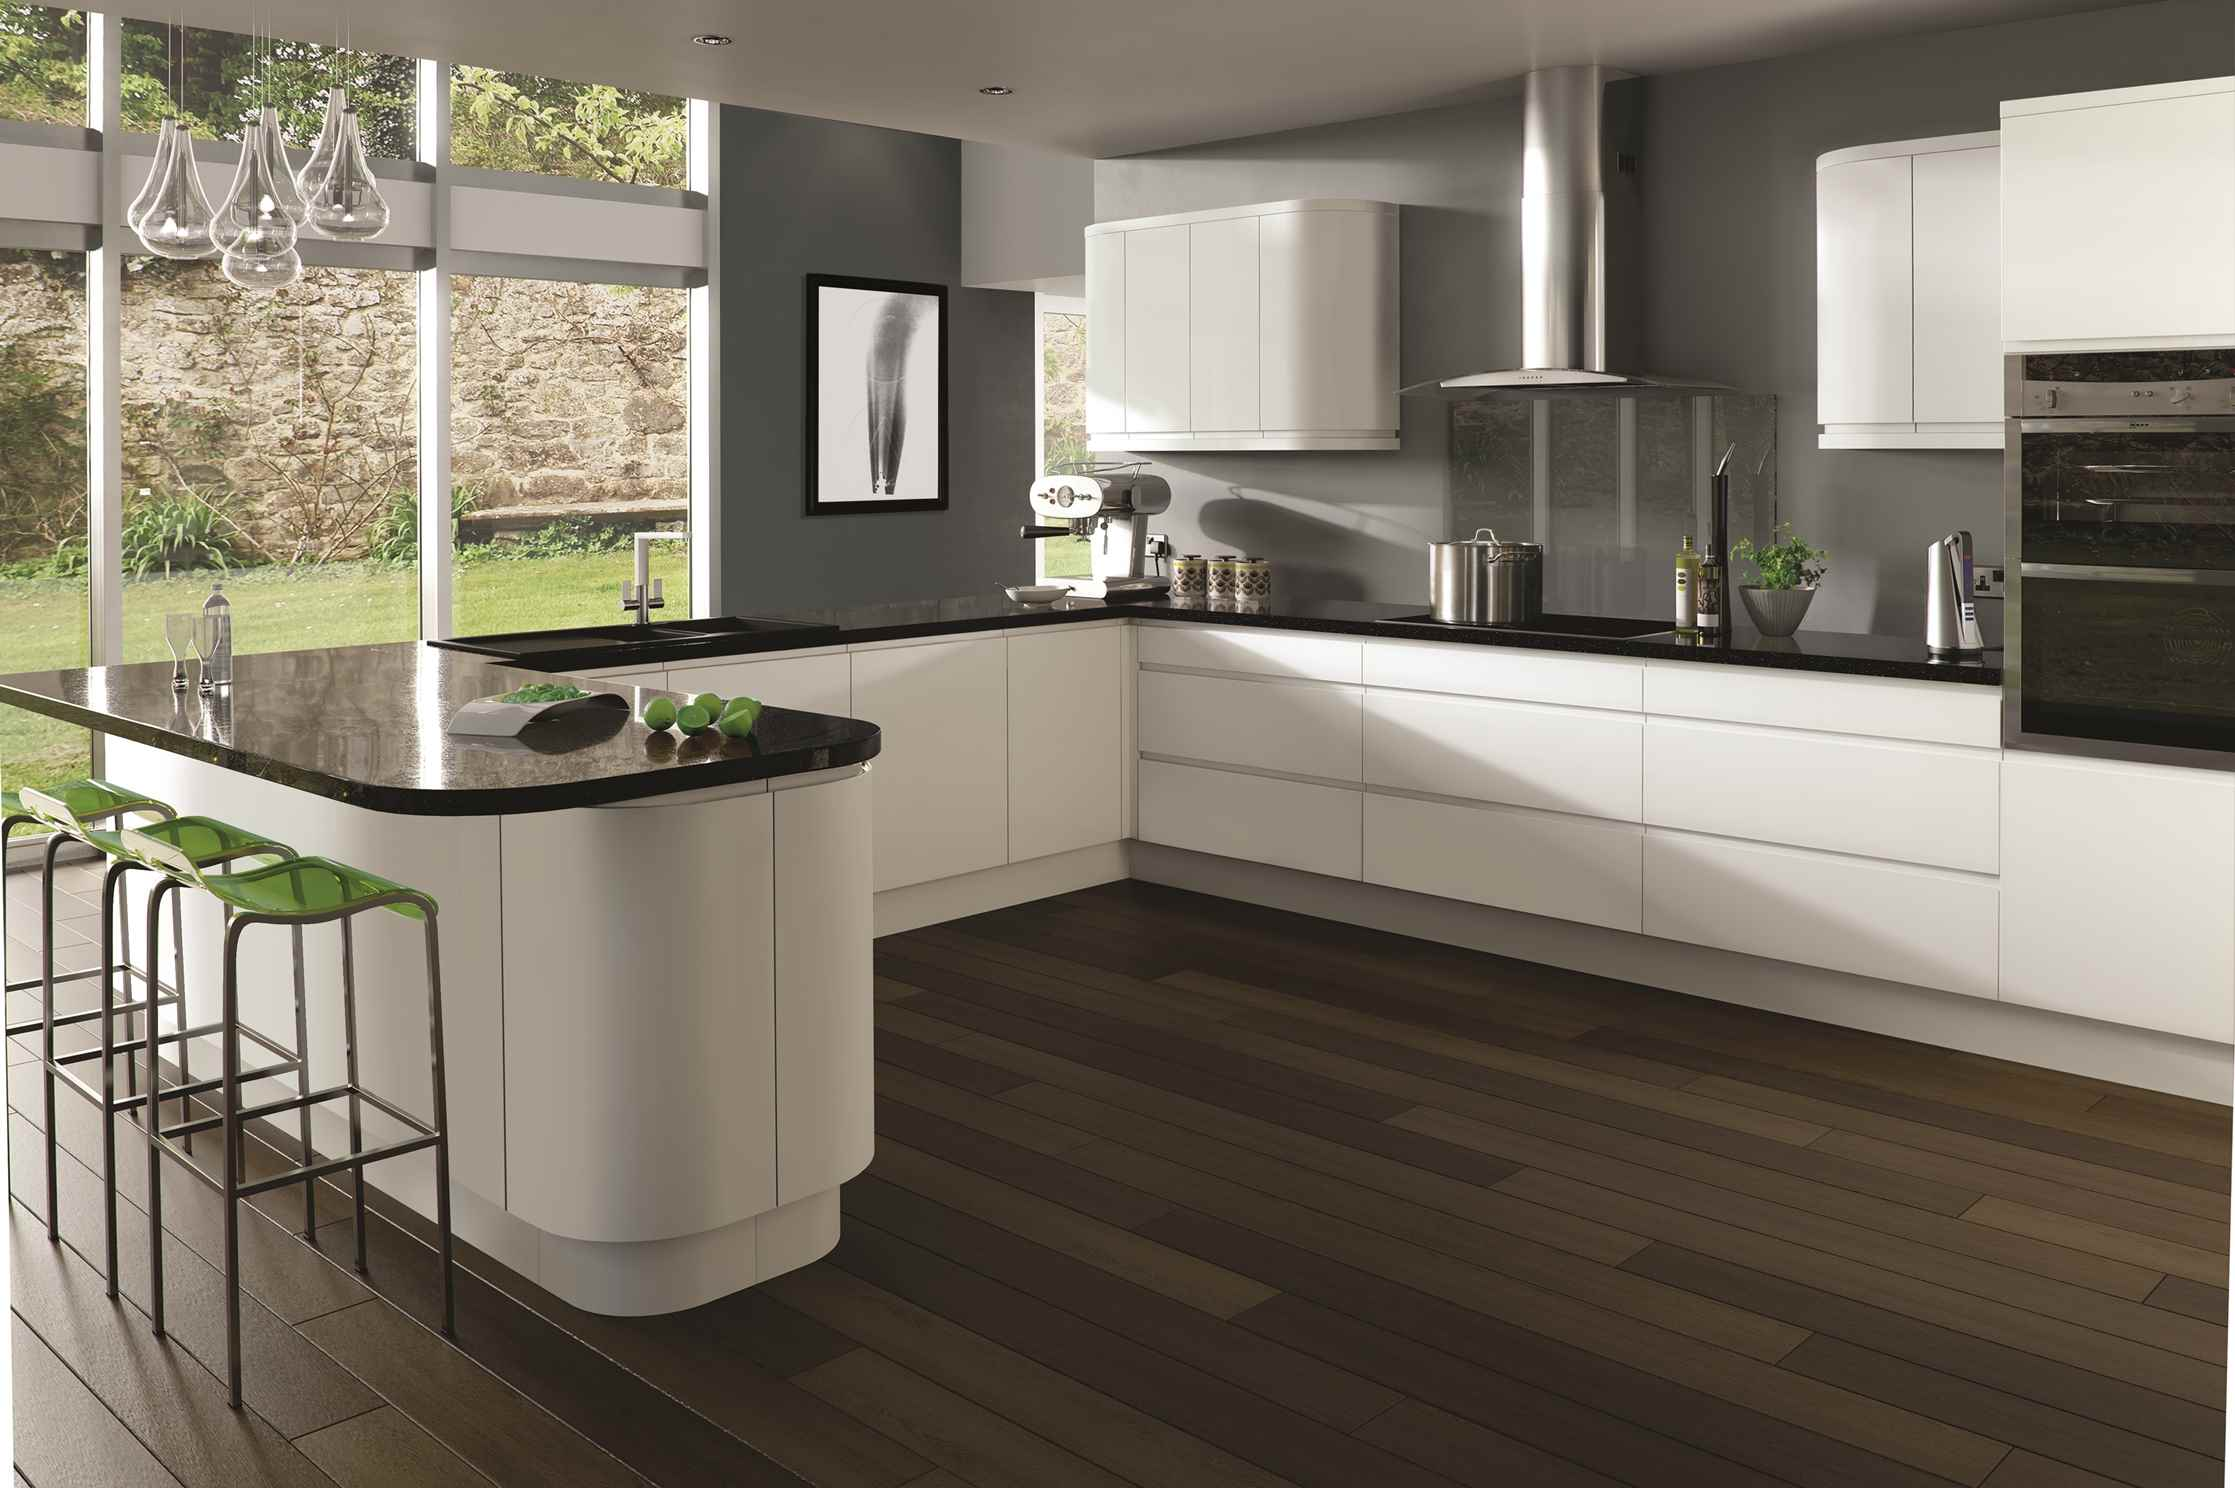 Küche Magnolia Welche Bodenfliese Jem Living Kitchens Jem Living Kitchens And Bedrooms